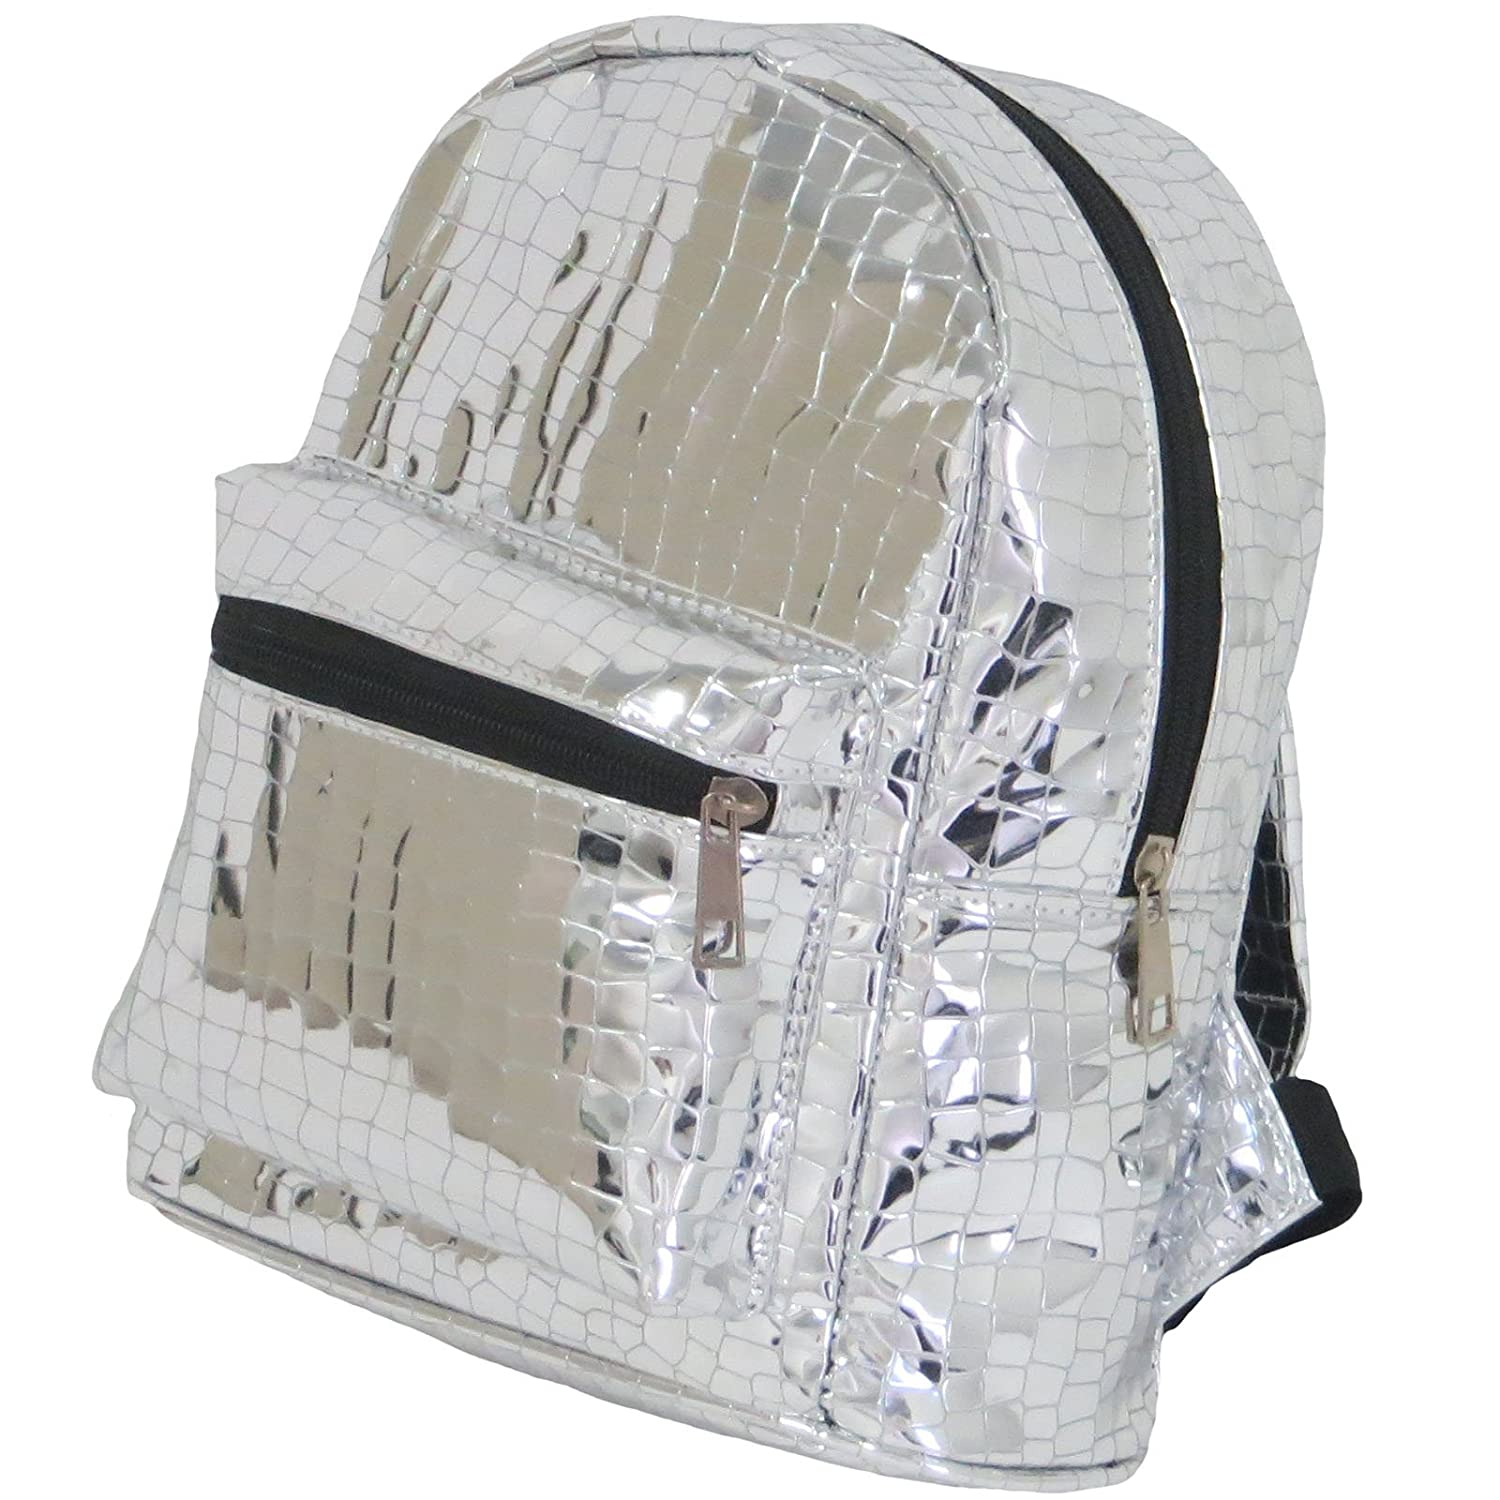 Holographic luminous mirror metallic silver backpack crocodile geometric PU leather for girls and women